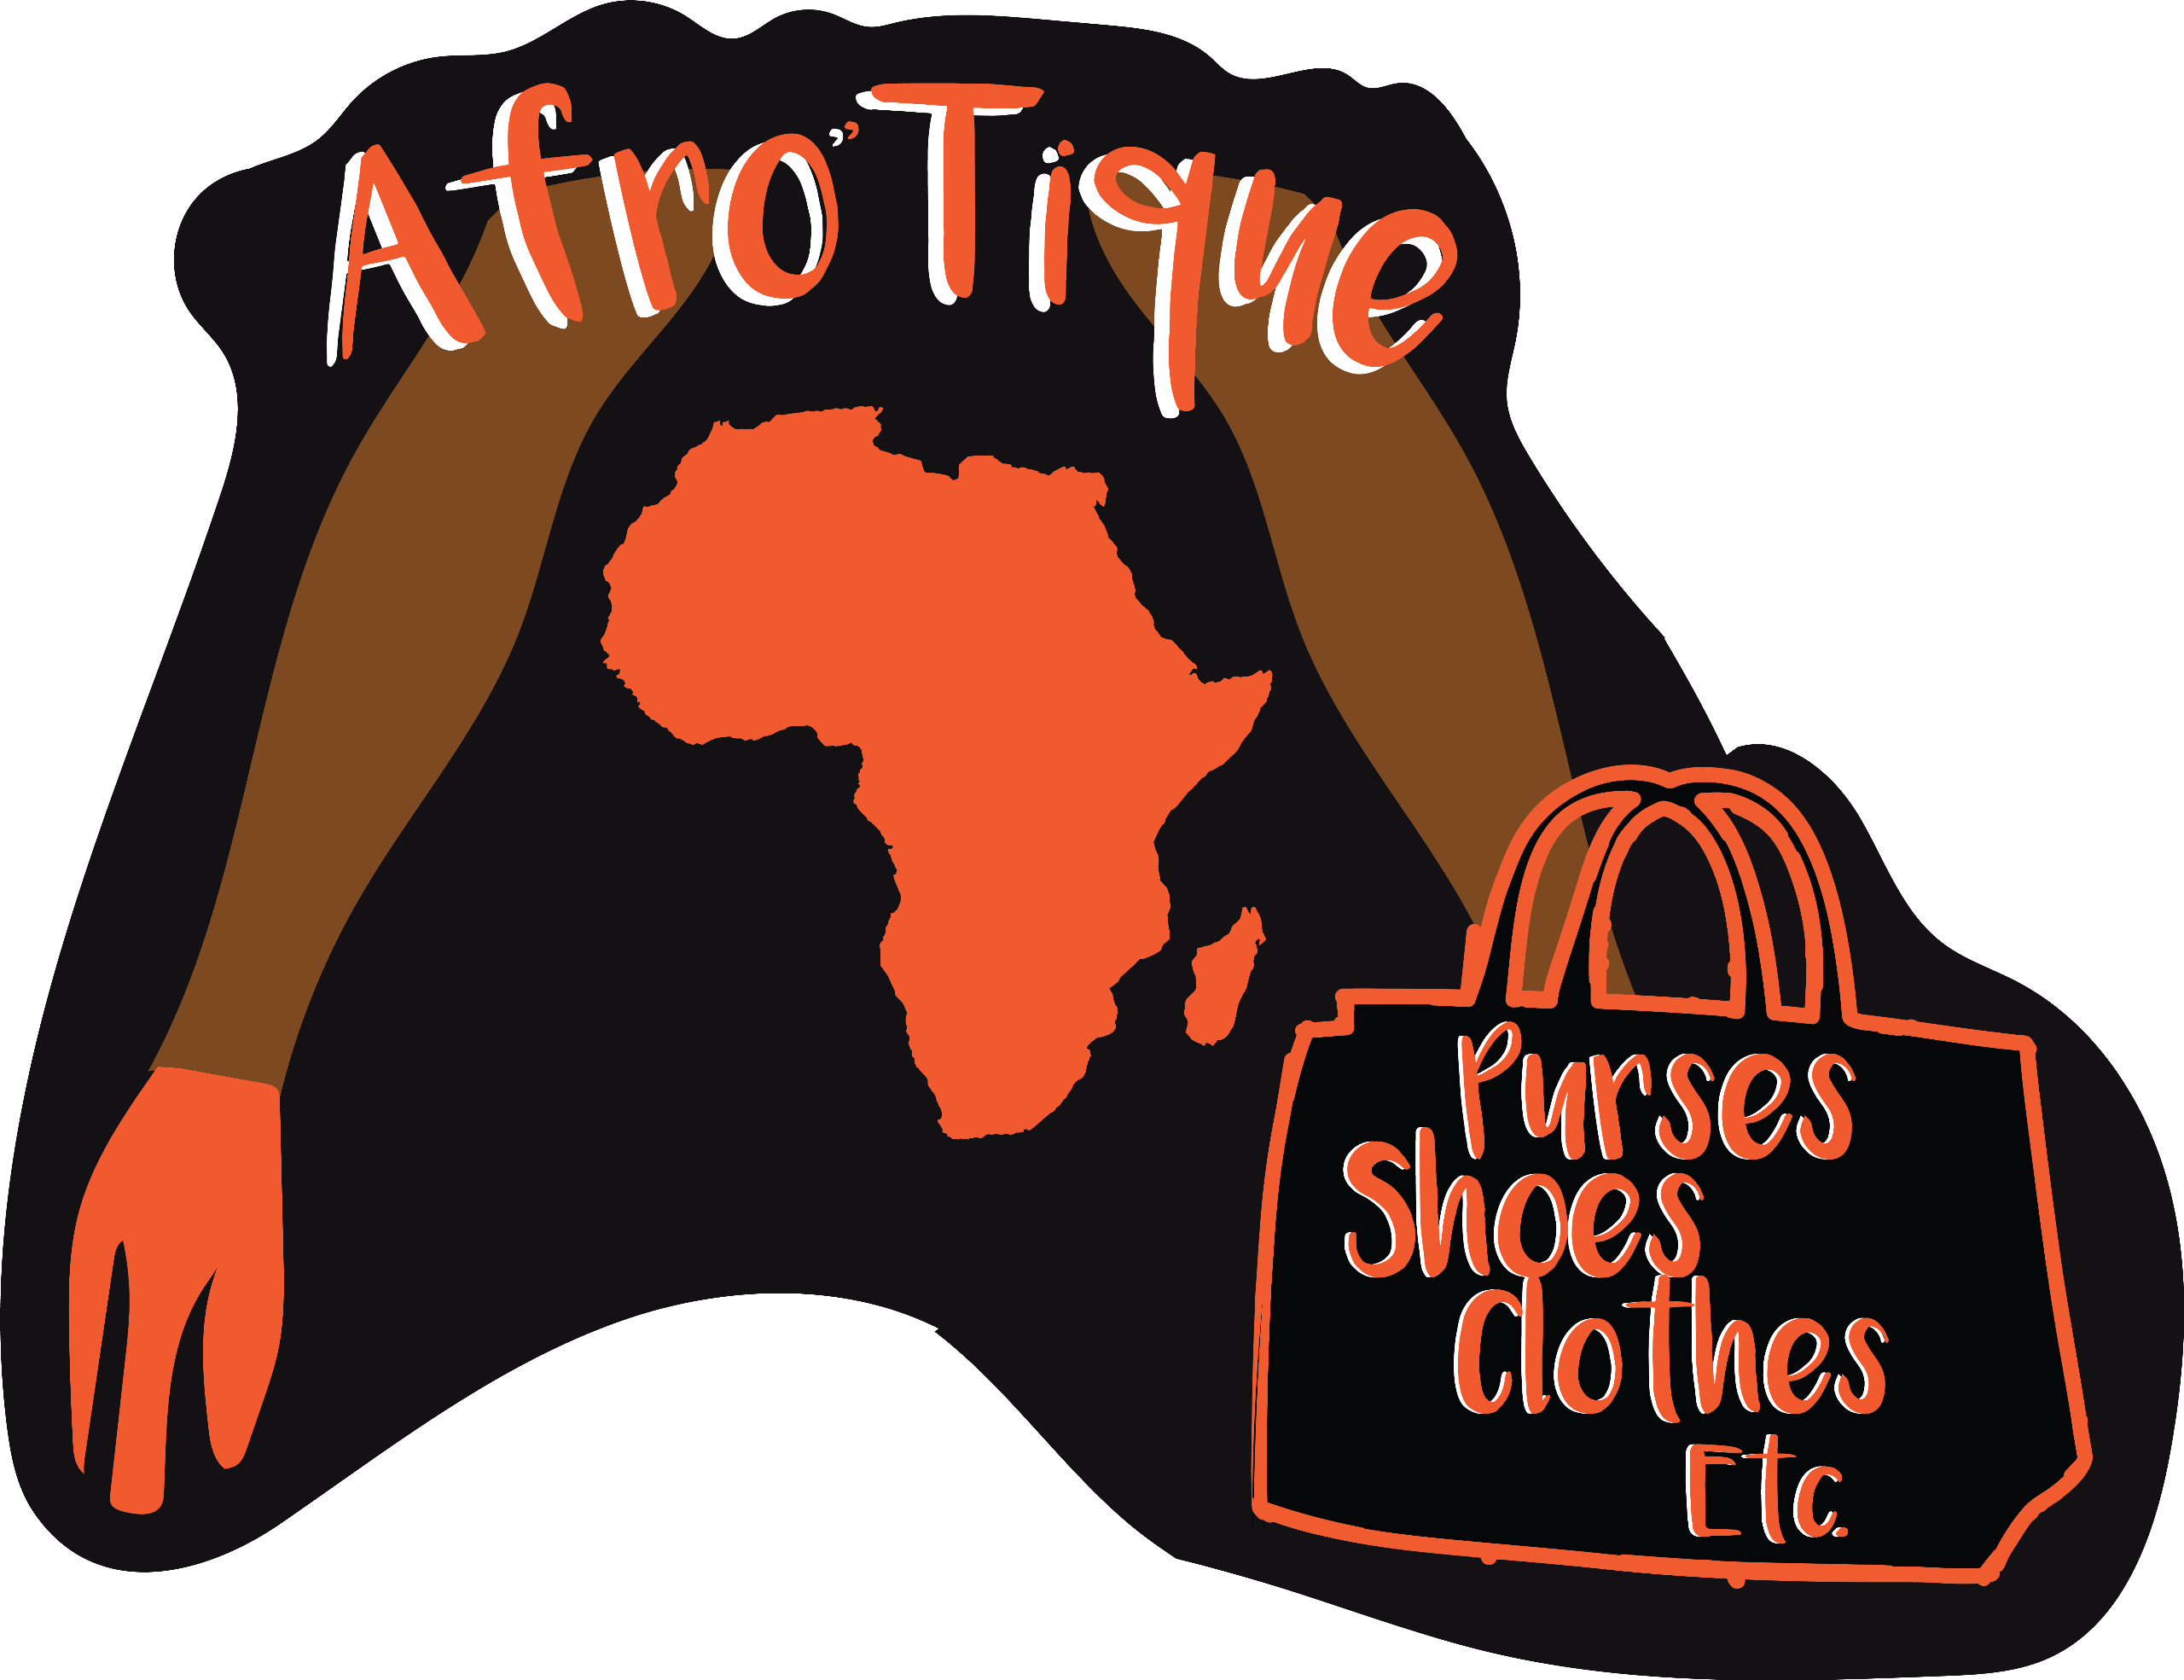 AFRO'TIQUE- PURSES SHOES CLOTHES ETC. Logo